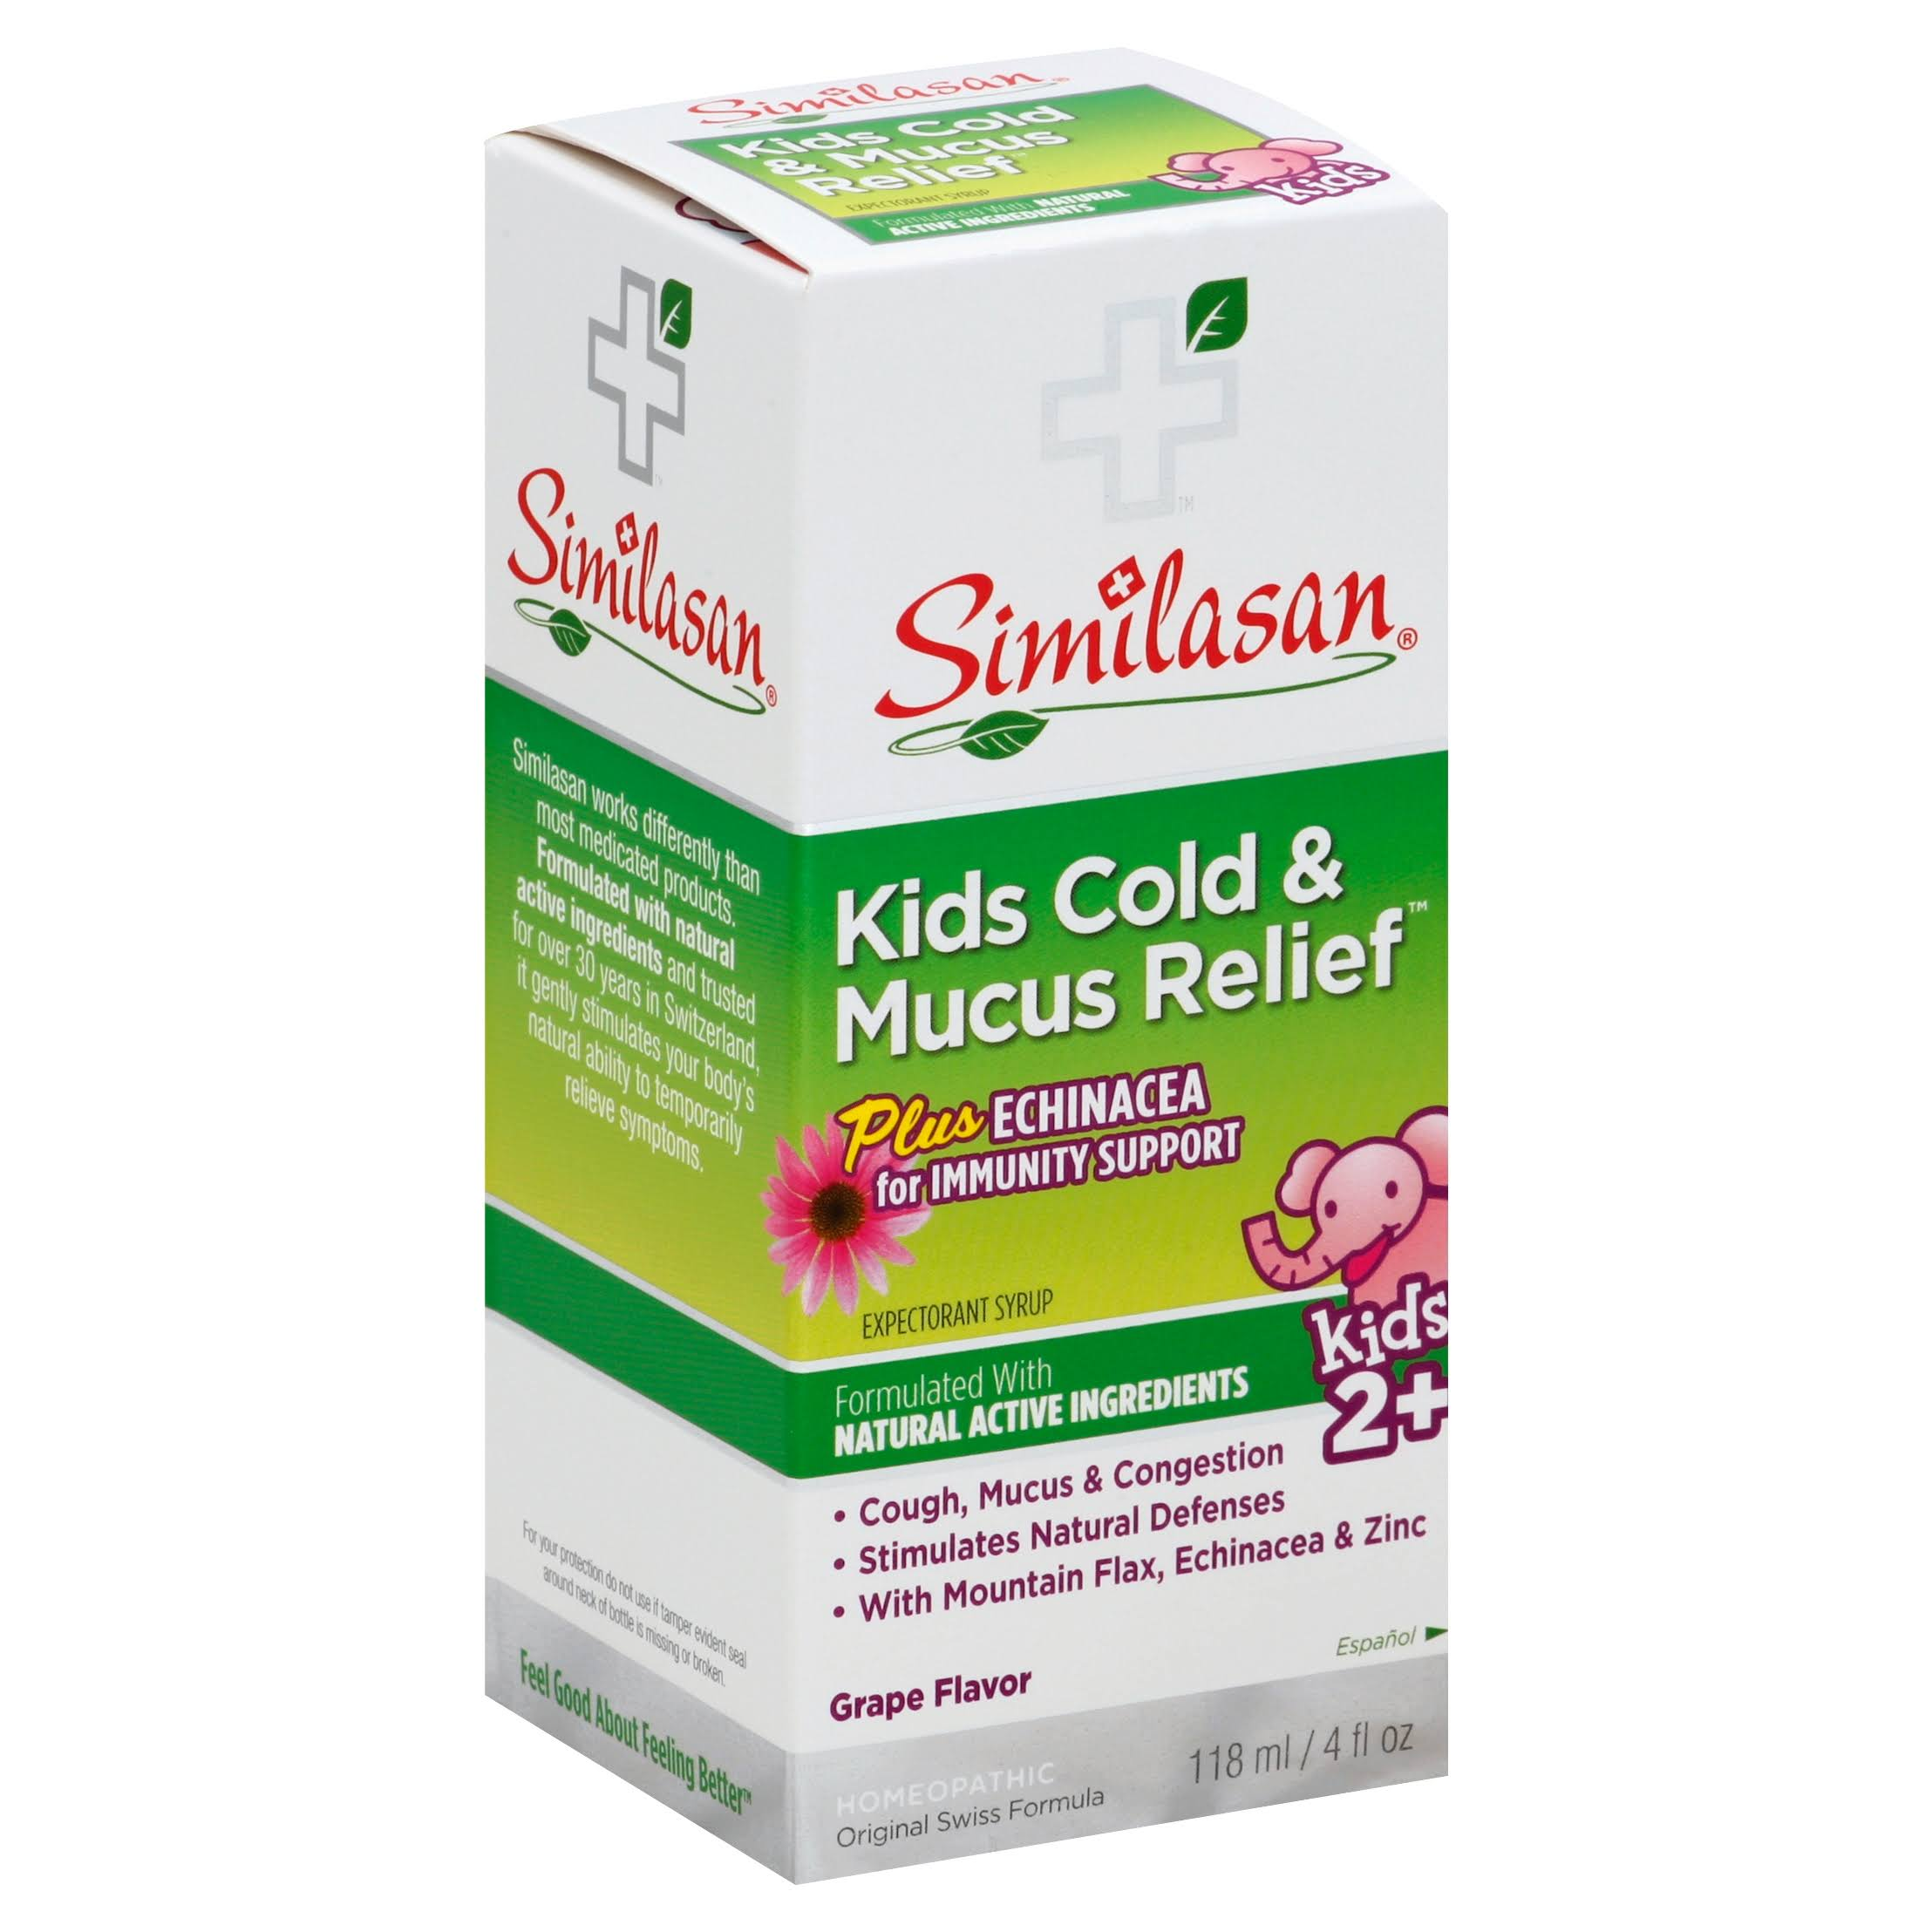 Similasan Kids Cold & Mucus Relief Plus Echinacea - 4oz